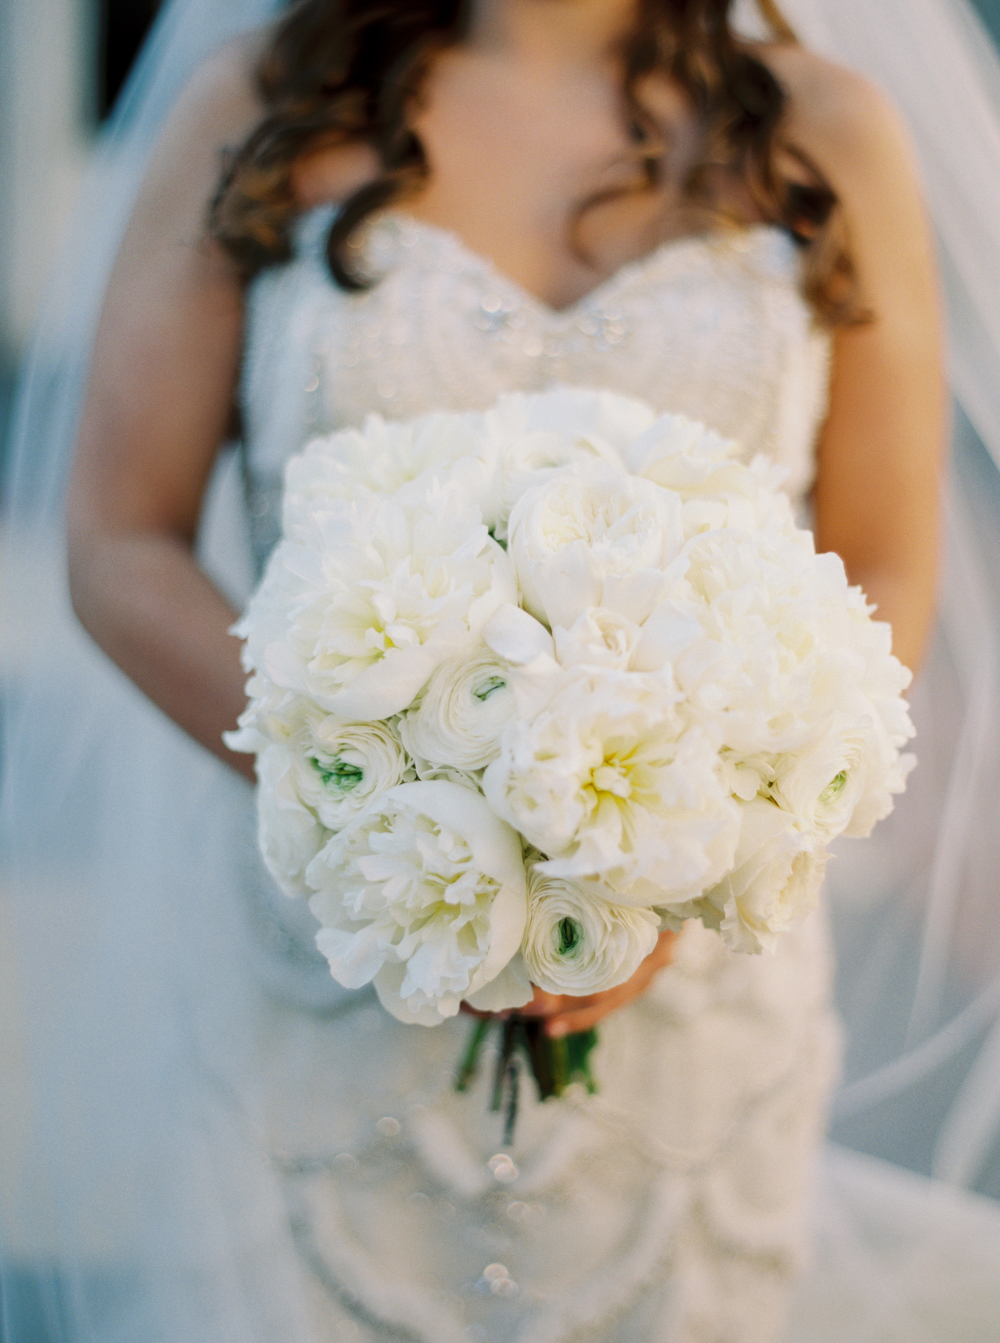 closeup of white peonies and white garden roses in a bridal bouquet being held by a bride